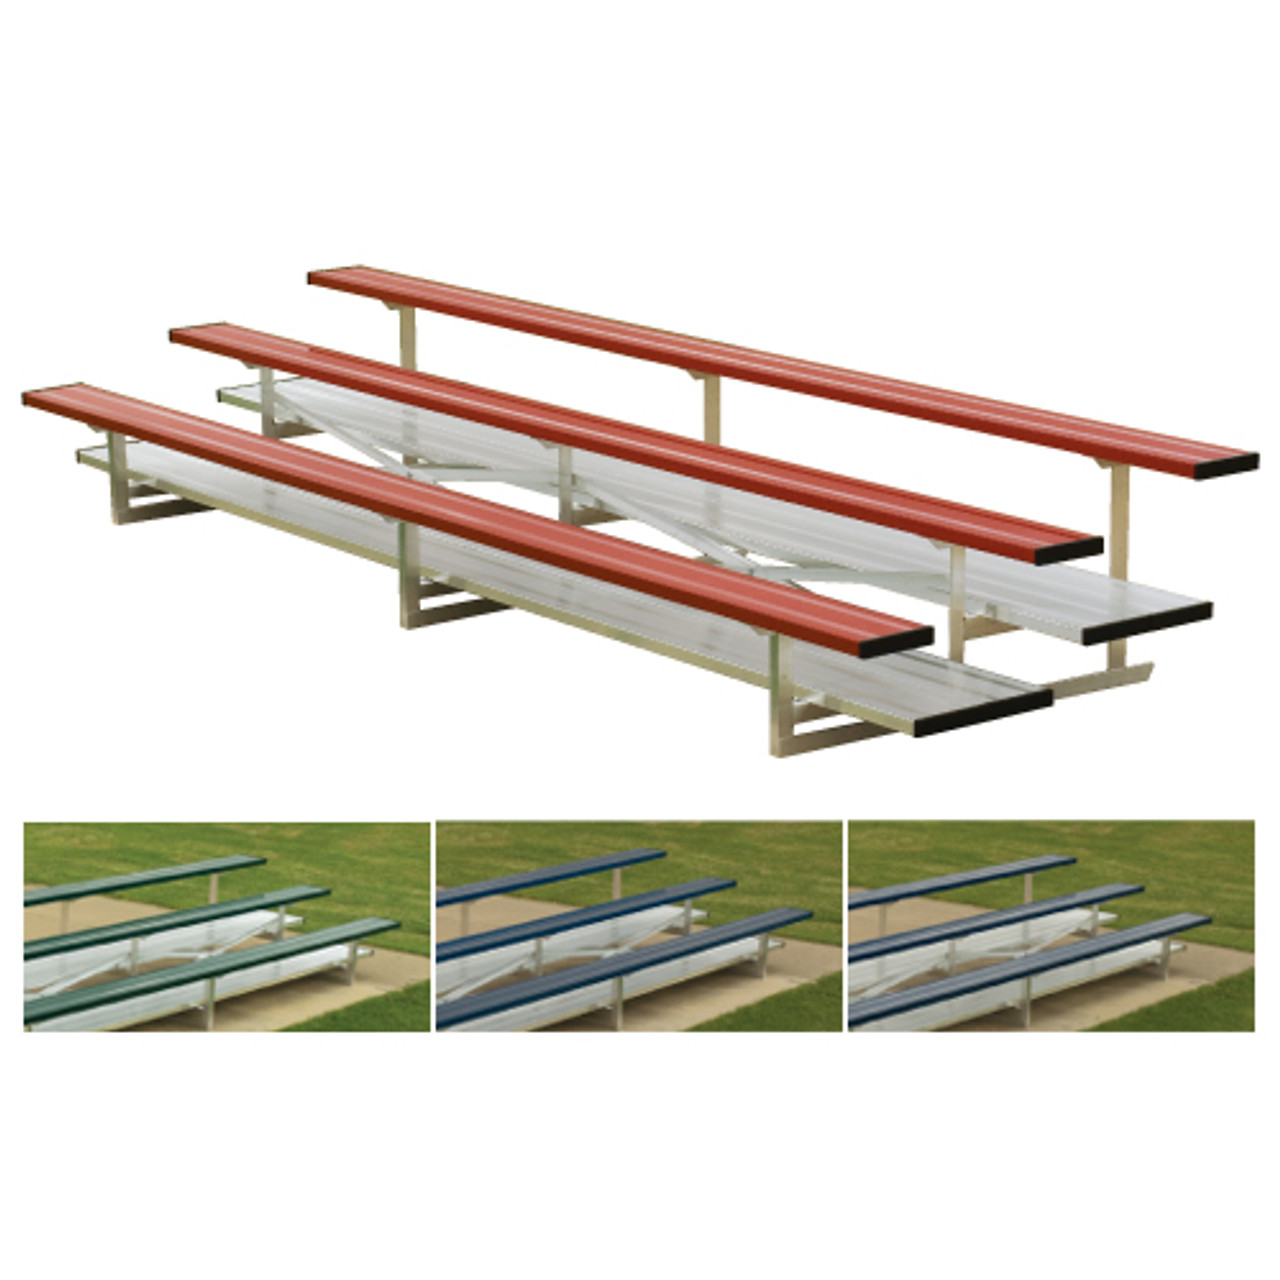 aluminum bleachers 2 Row 15' Standard (seats 20) add Color